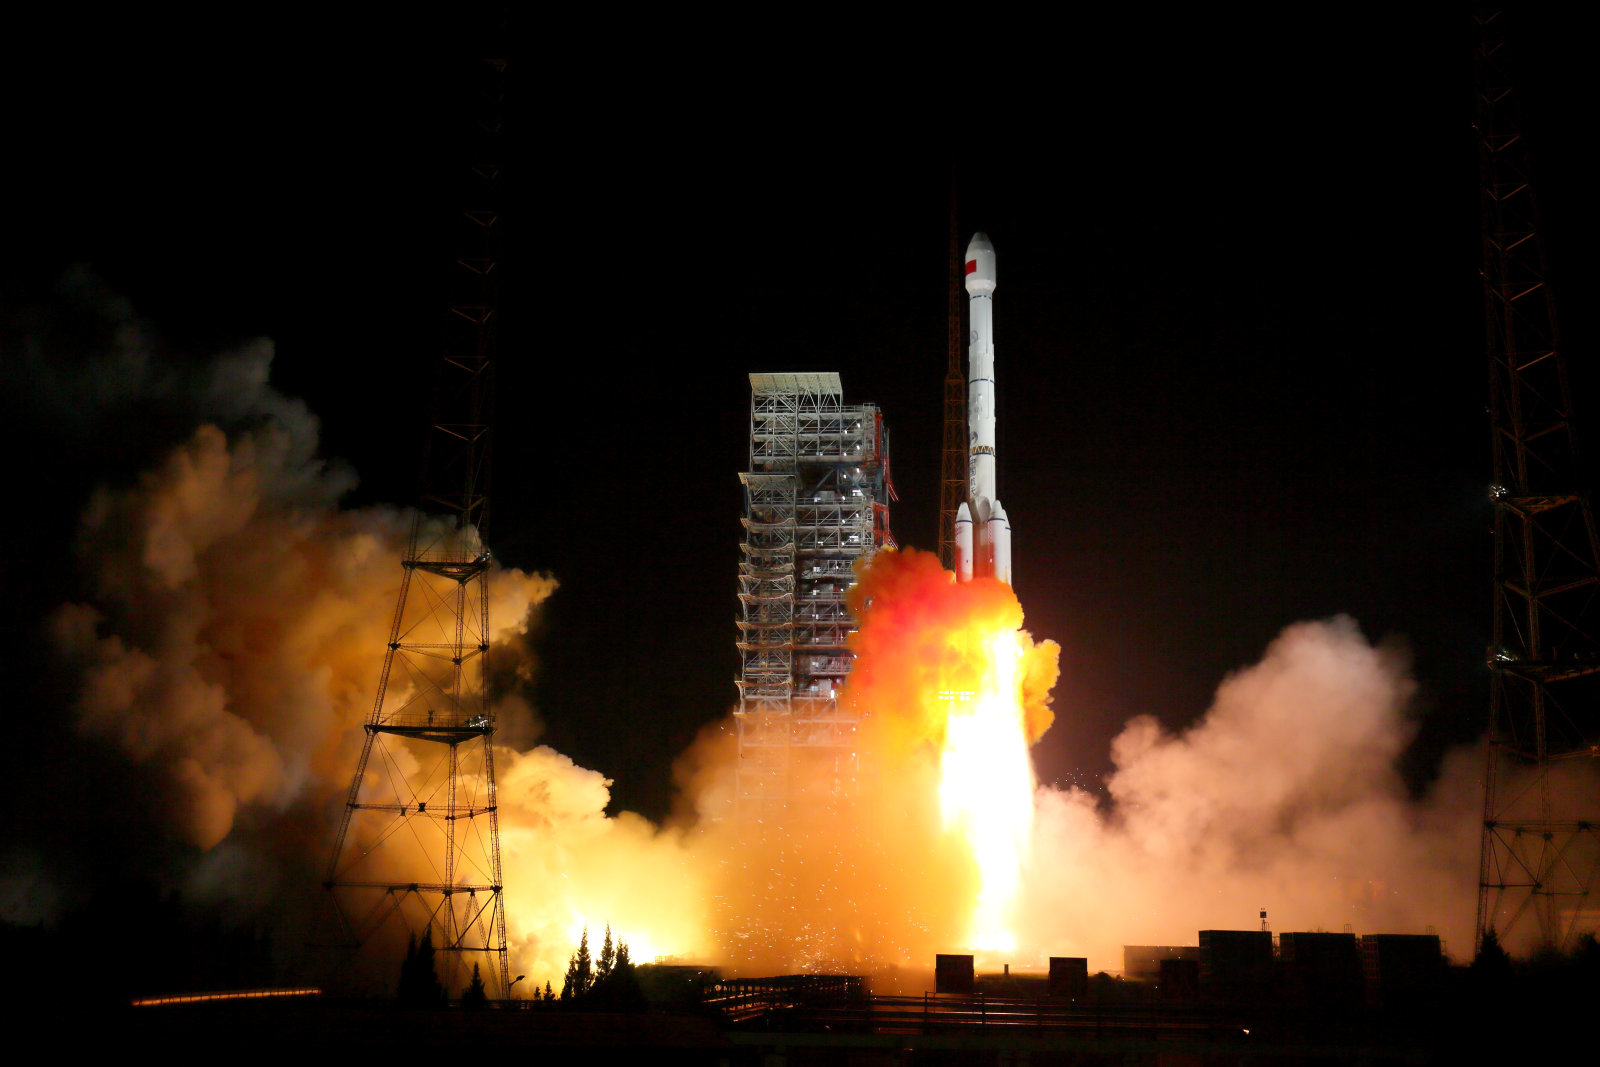 Two BeiDou-3 satellites via a single carrier rocket take off at the Xichang Satellite Launch Center, Sichuan province, China November 5, 2017. Picture taken November 5, 2017. REUTERS/Stringer ATTENTION EDITORS - THIS IMAGE WAS PROVIDED BY A THIRD PARTY. CHINA OUT.